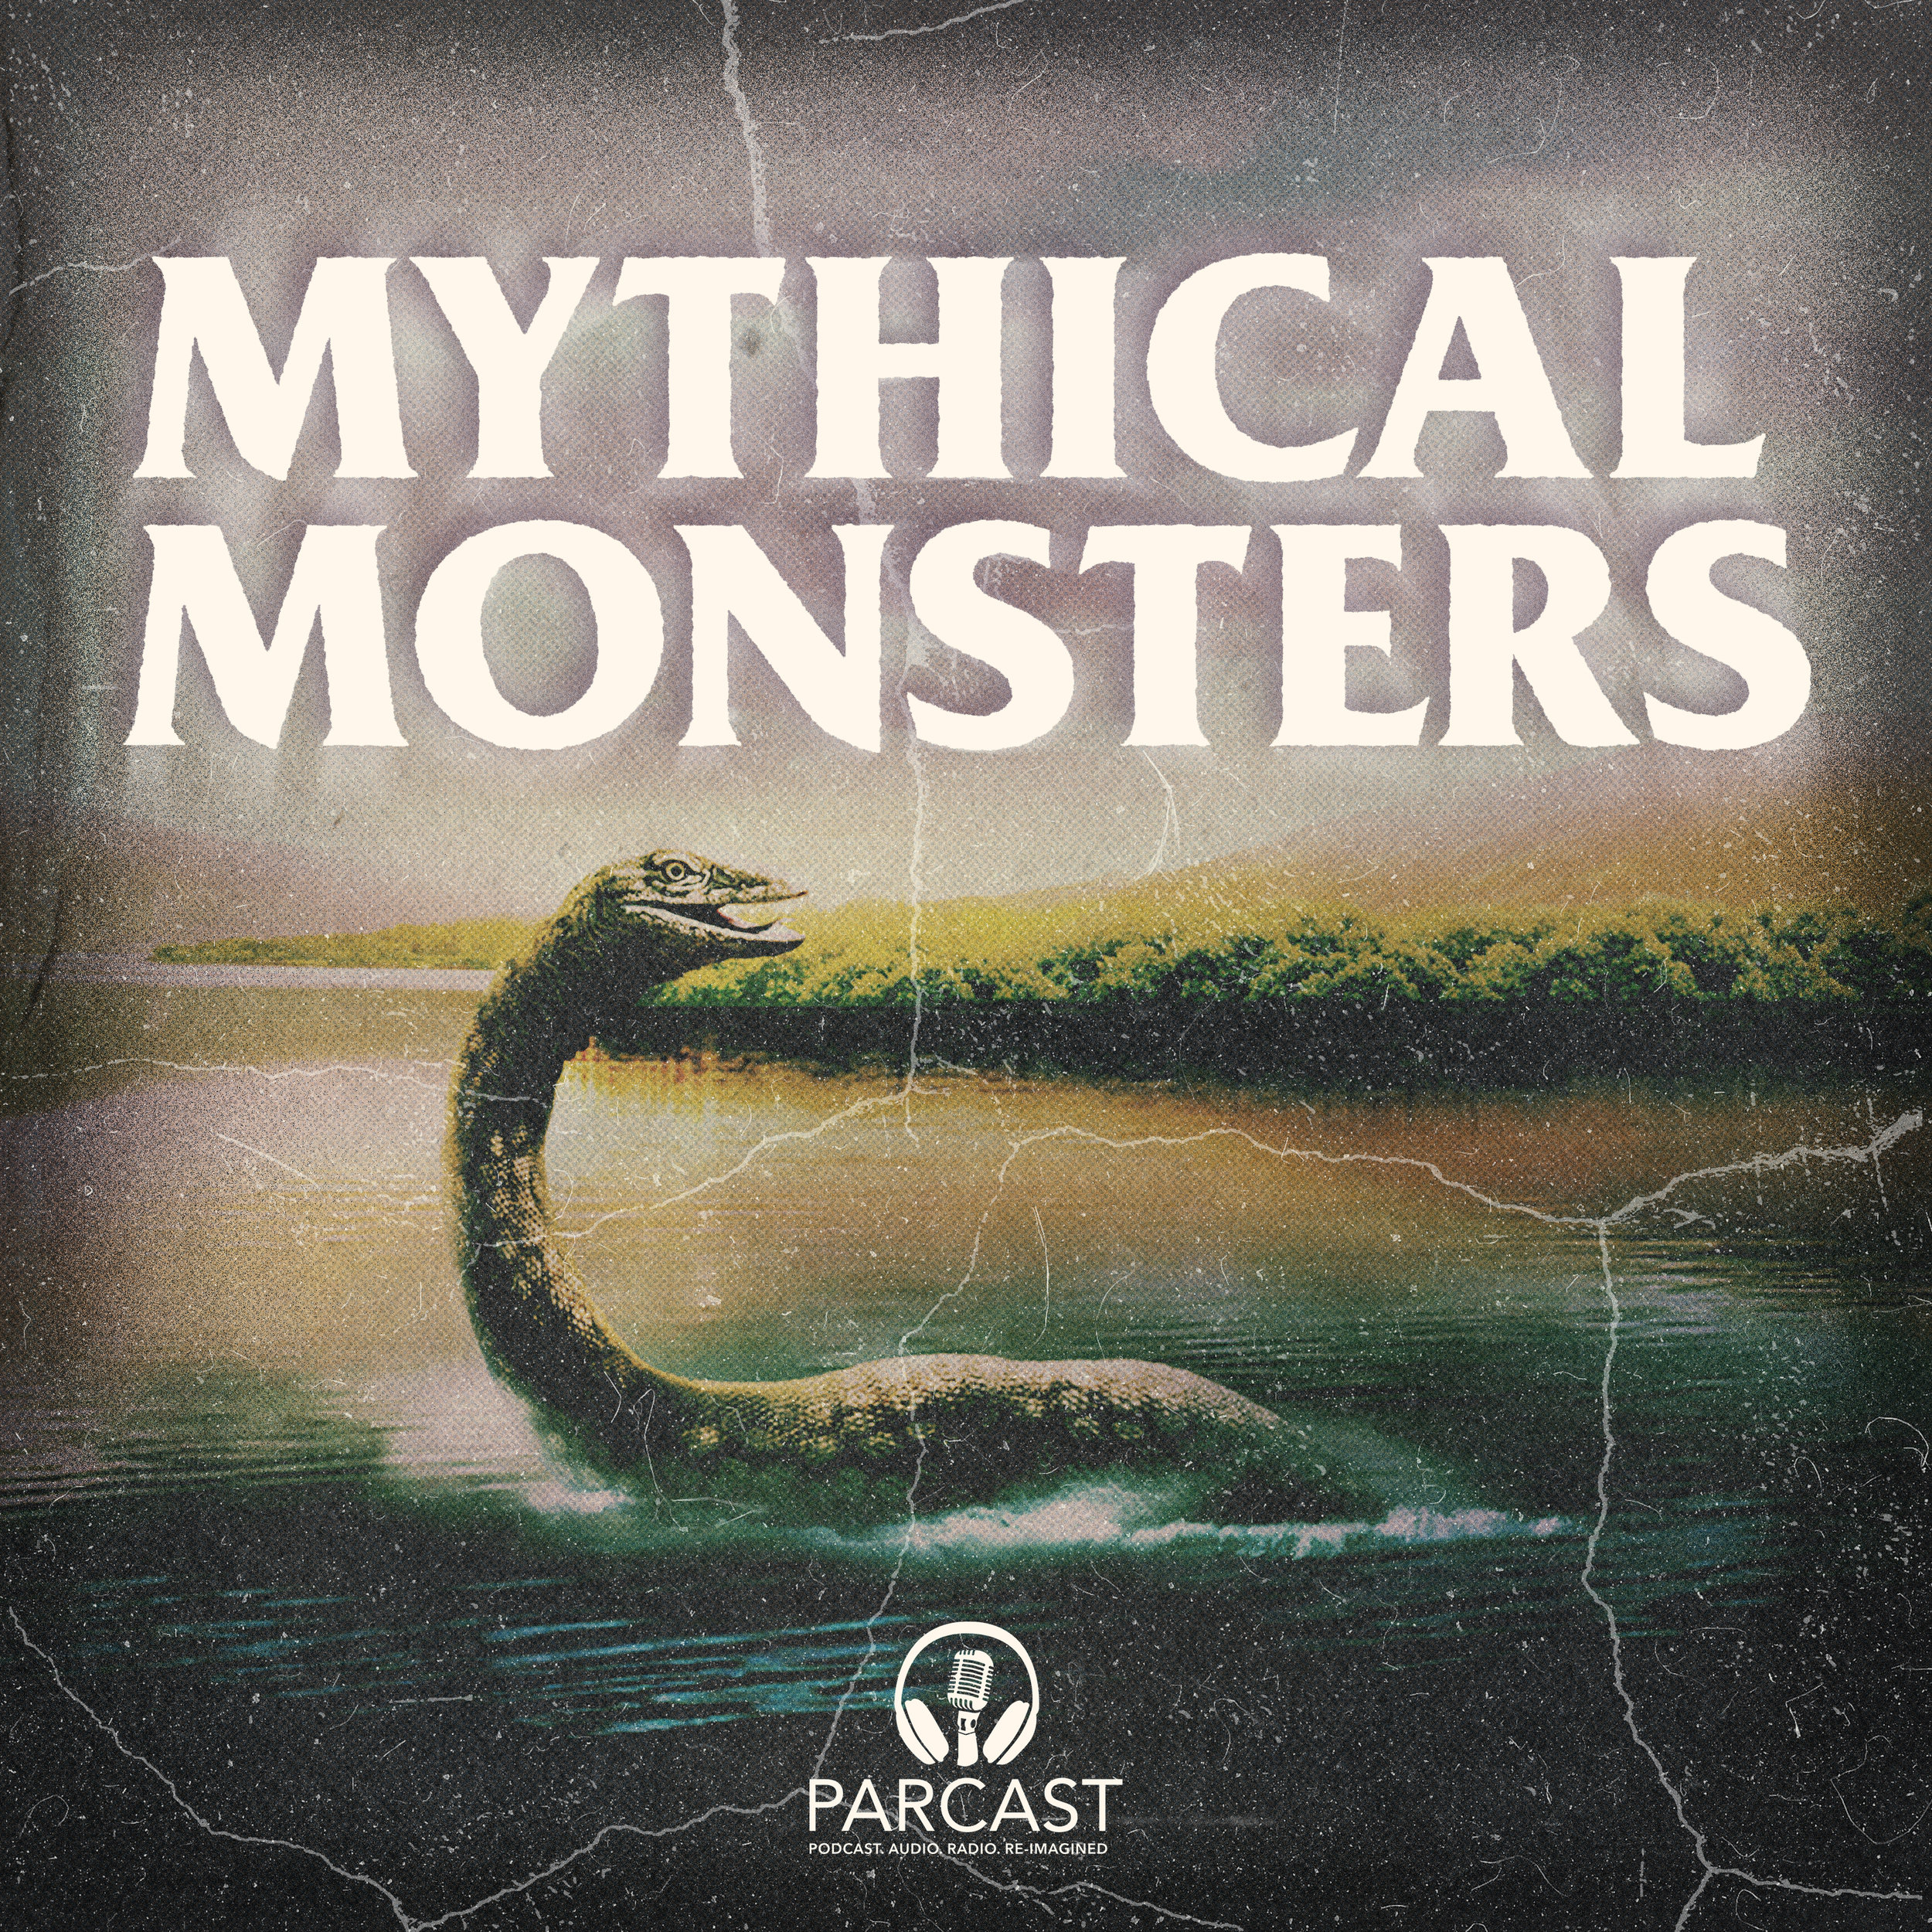 Mythical_Monsters_CoverArt_3000px.jpg